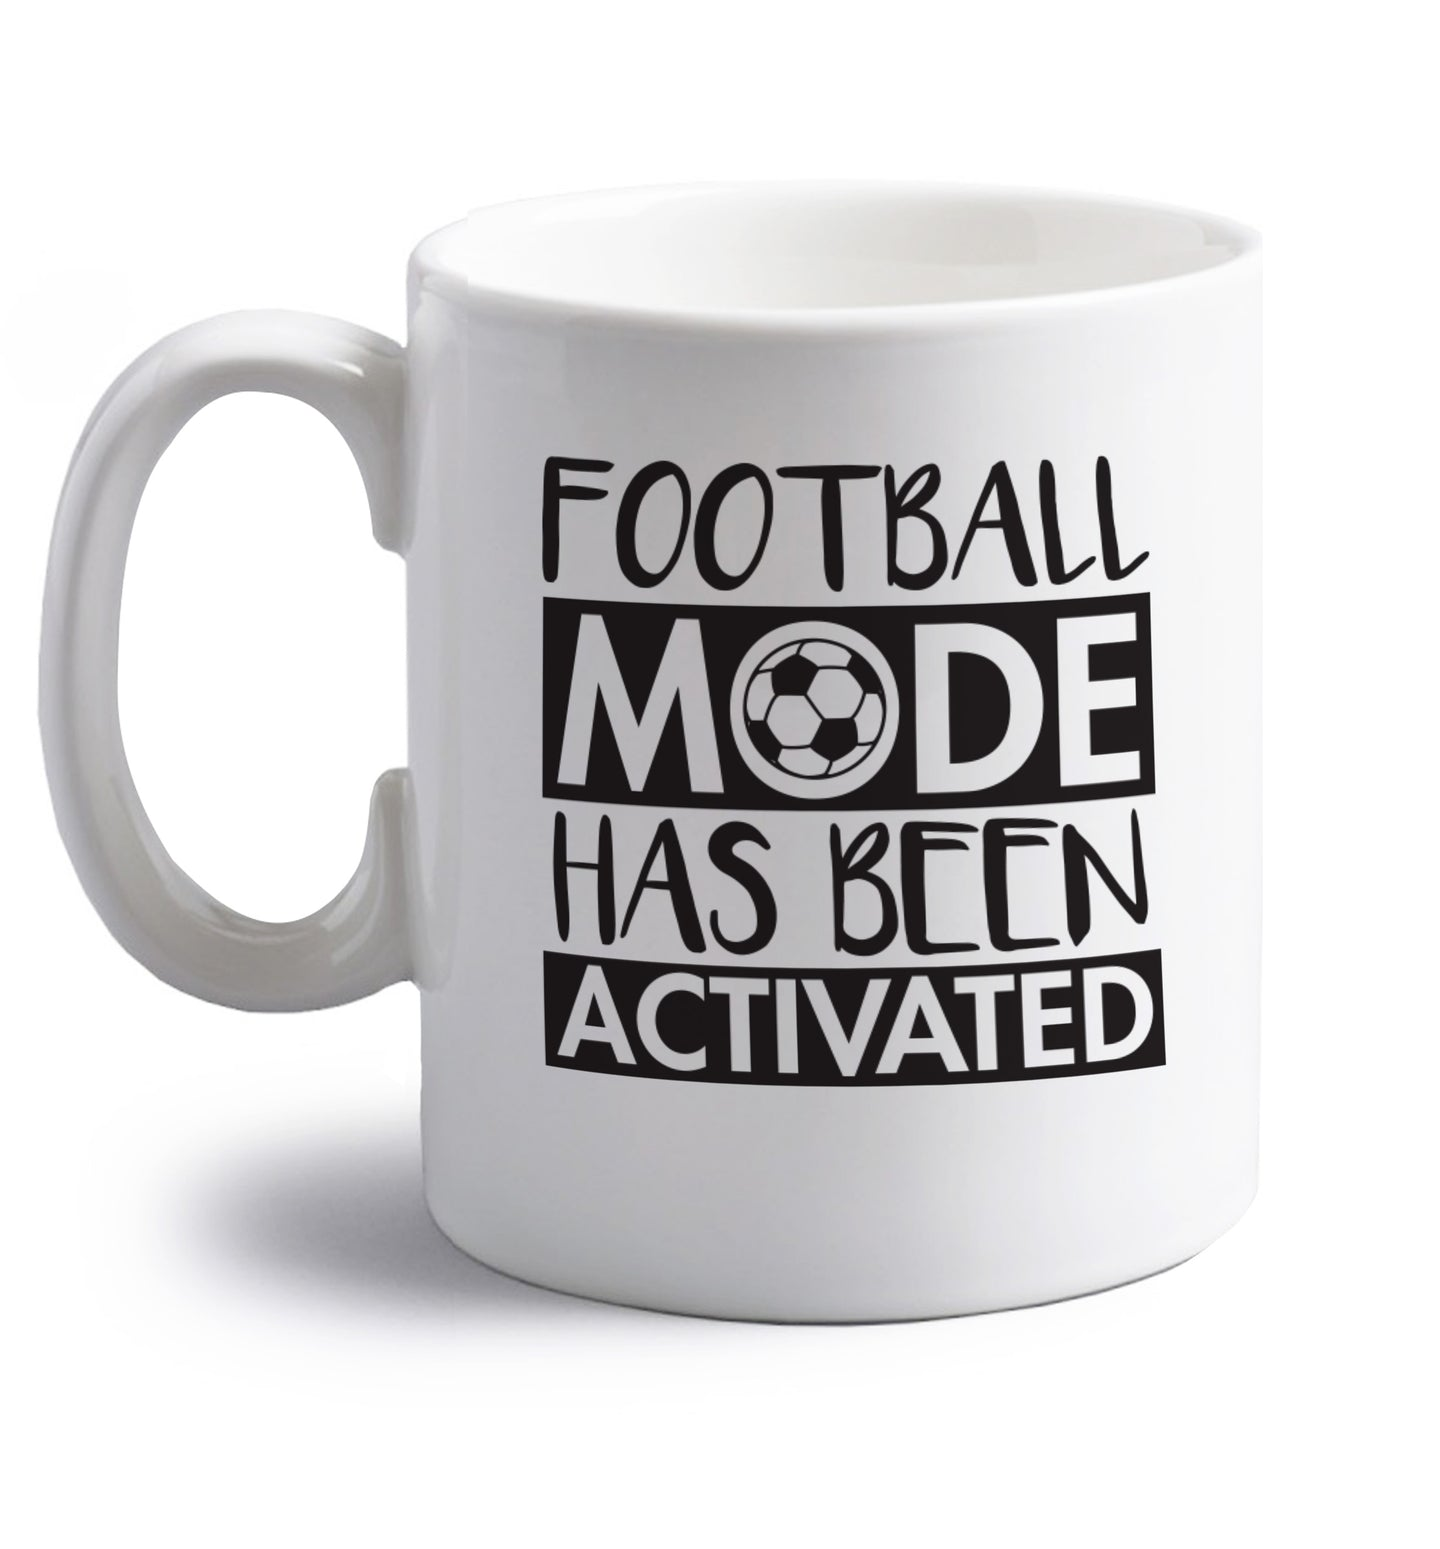 Football mode has been activated right handed white ceramic mug